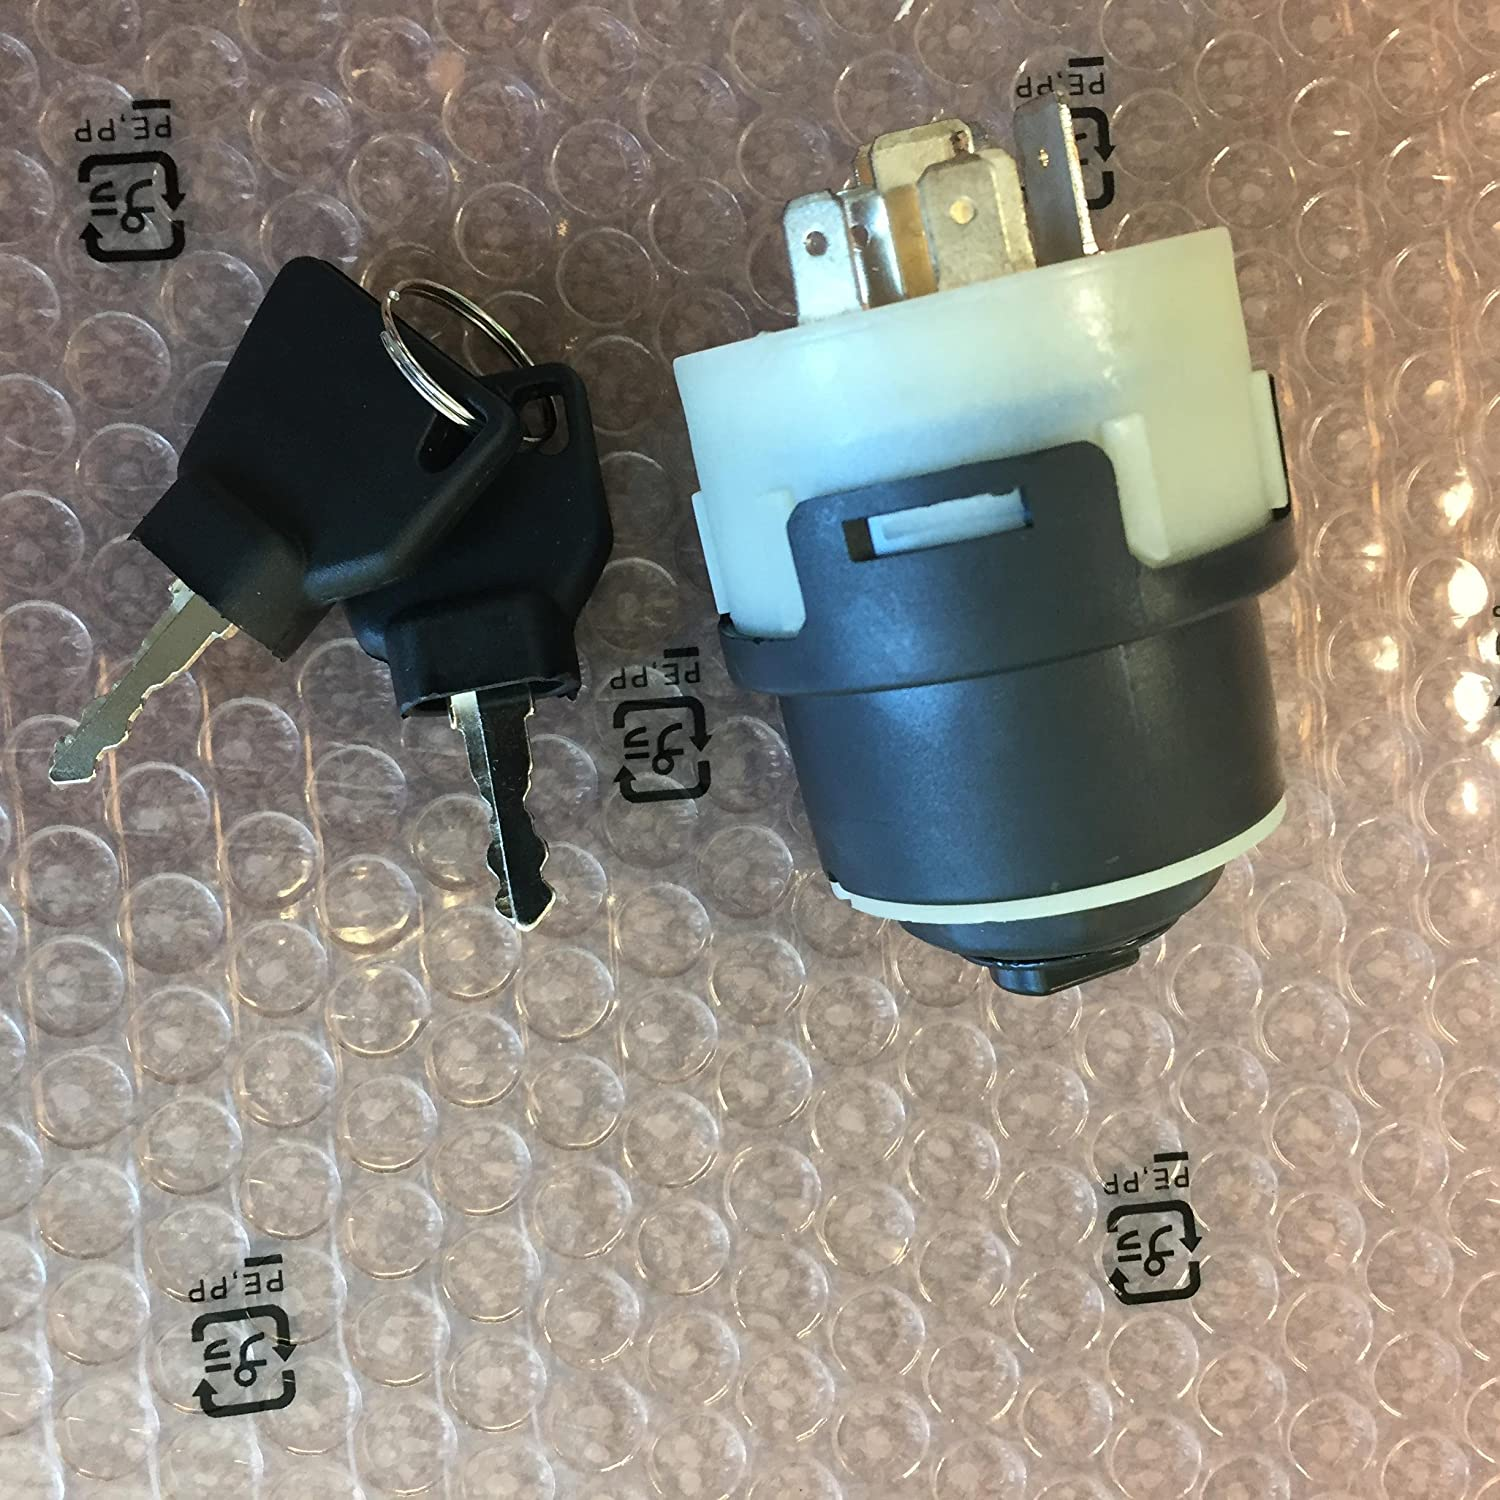 701//45500 JCB BACKHOE GENUINE IGNITION SWITCH WITH 2 KEYS 701//80184